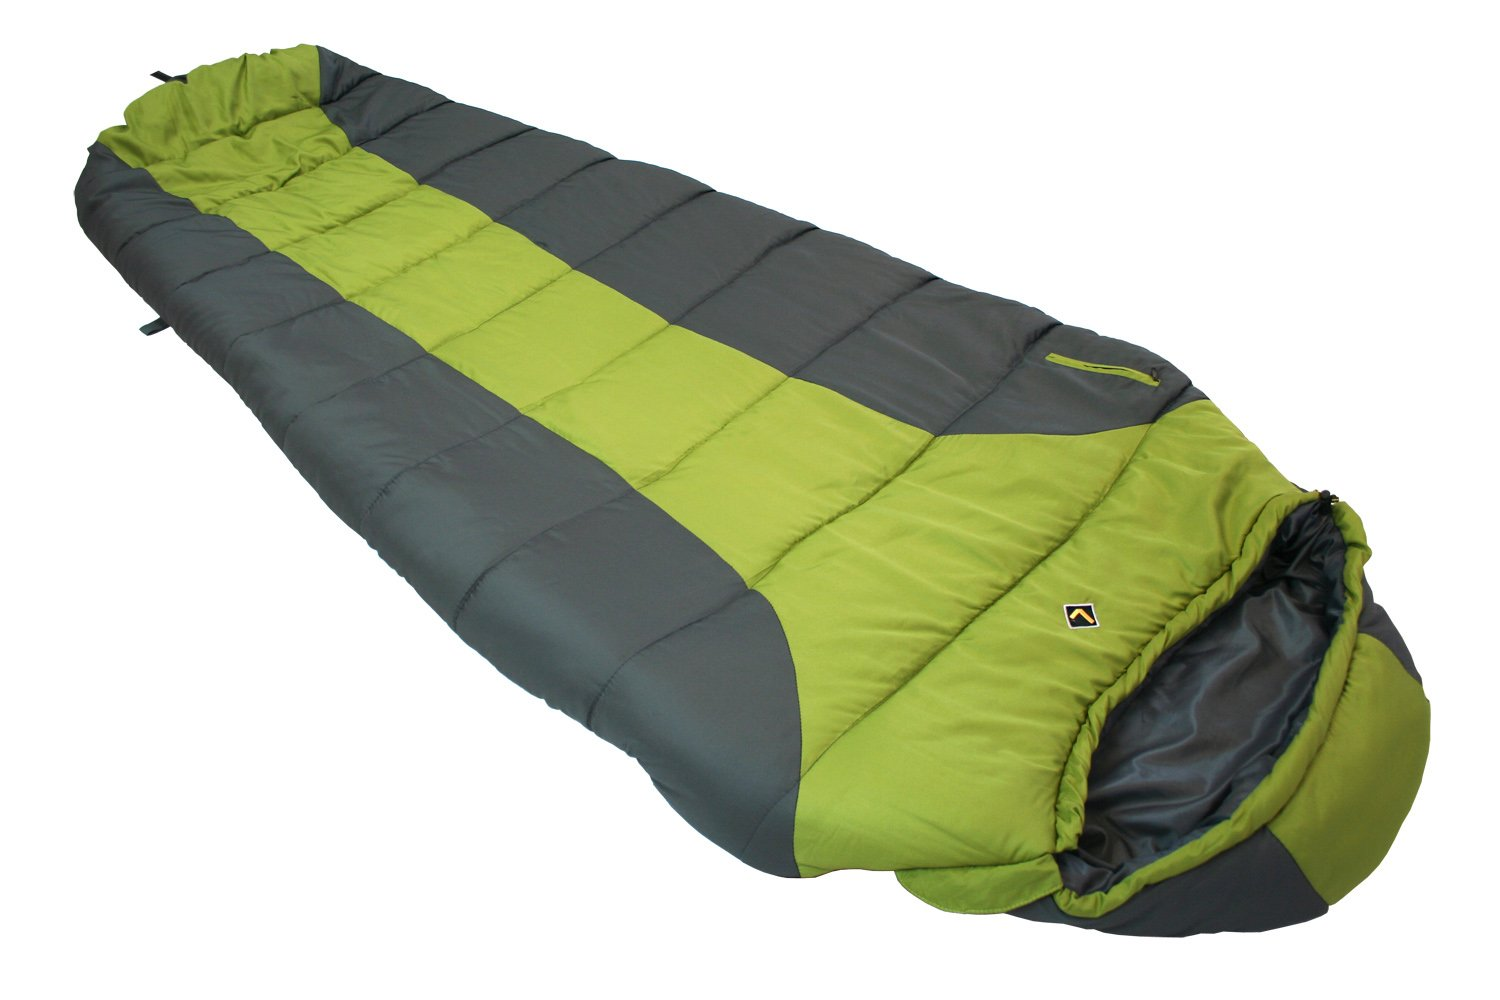 Ledge Sports X-Lite +40 F Degree XL Oversize Ultra Light Design, Compact Sleeping Bag (88 X 36 X 26) by Ledge